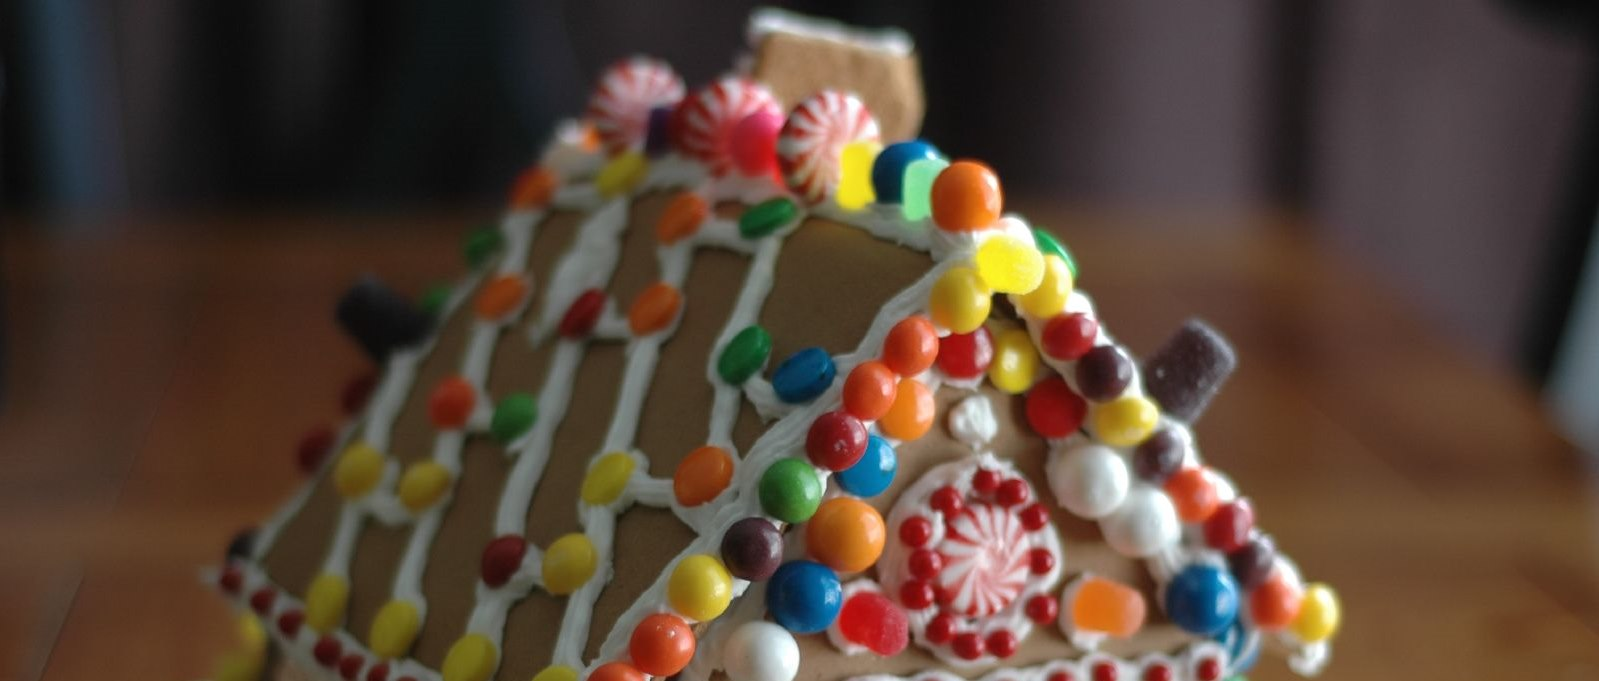 Macro photo of colorfully decorated gingerbread house adorned with candies of various types